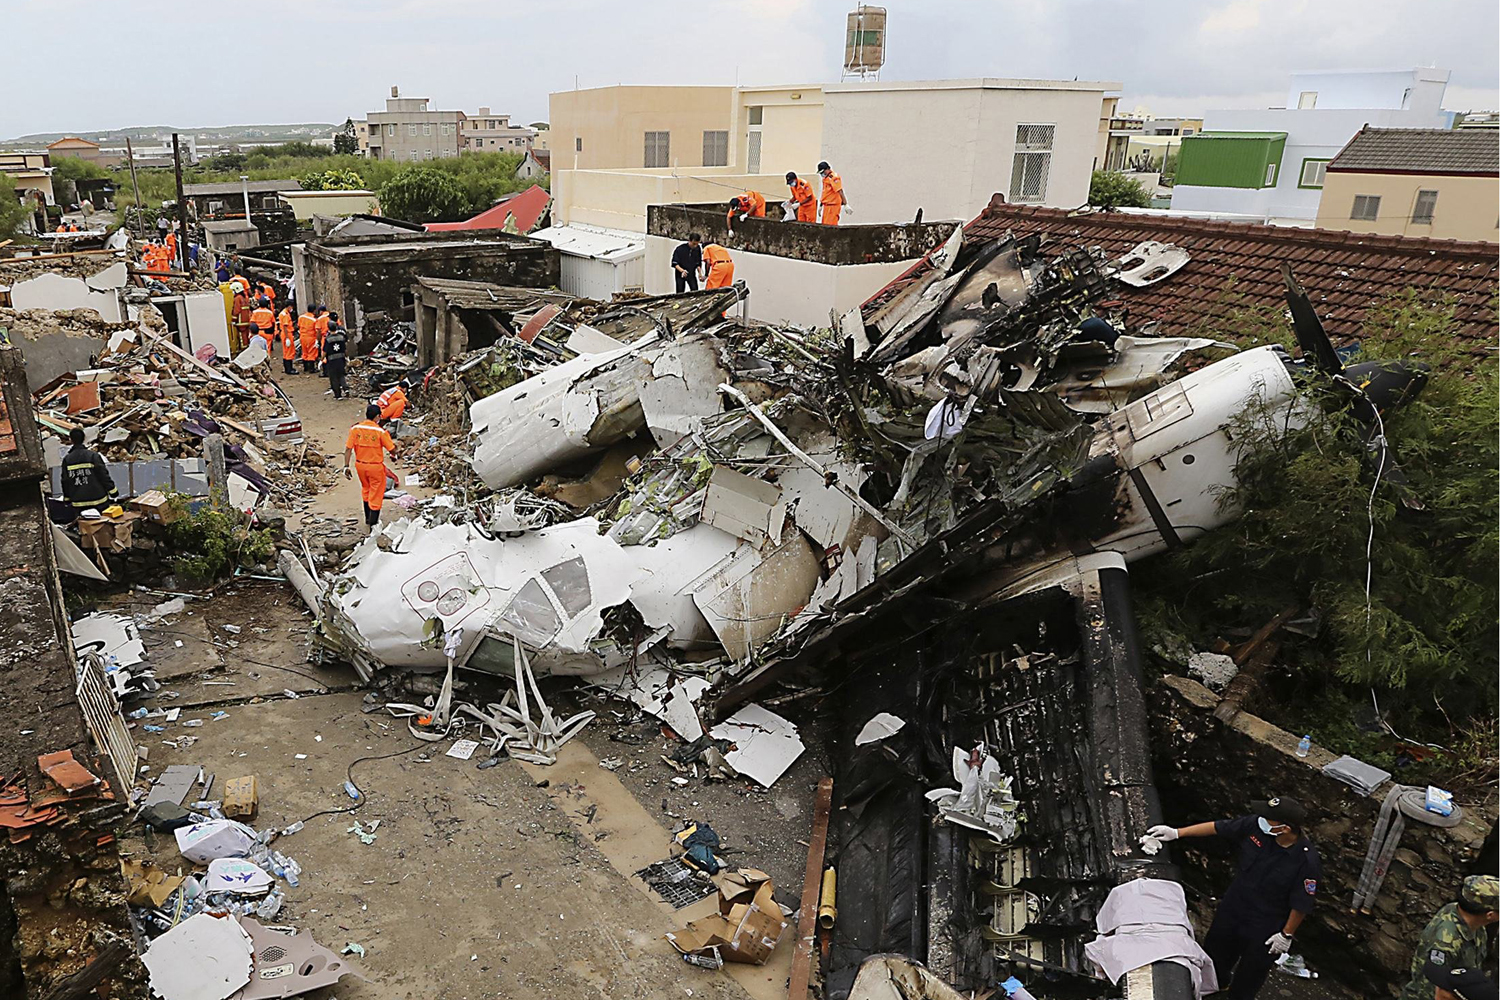 Jul. 24, 2014. Rescue personnel survey the wreckage of a TransAsia Airways turboprop plane that crashed, on Taiwan's offshore island Penghu.